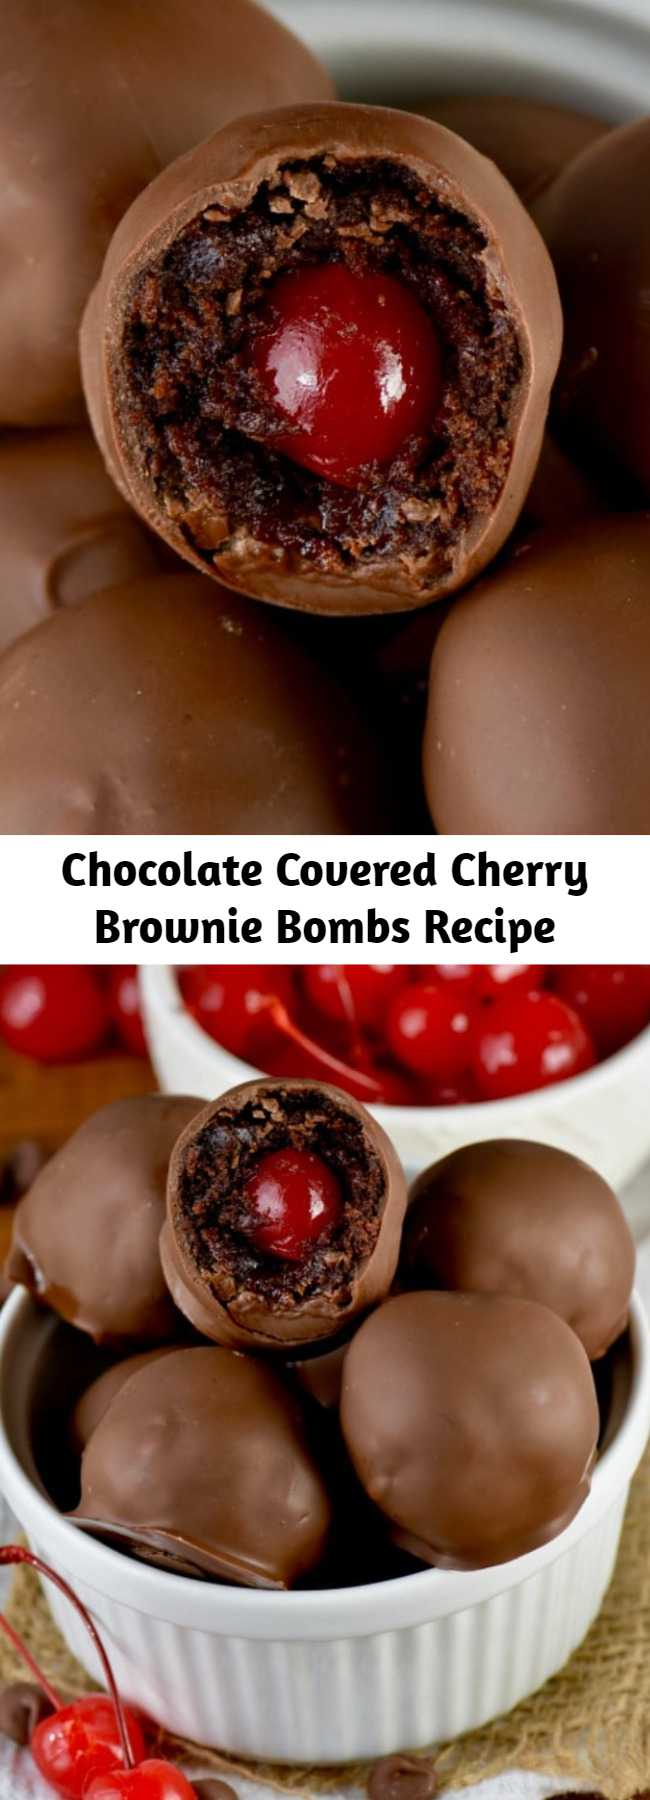 Chocolate Covered Cherry Brownie Bombs Recipe - These Chocolate Covered Cherry Brownie Bombs are delicious bites of brownie surrounding cherries and then dipped in chocolate! These tiny little truffles of amazingness are easy enough to make, but even easier to eat!